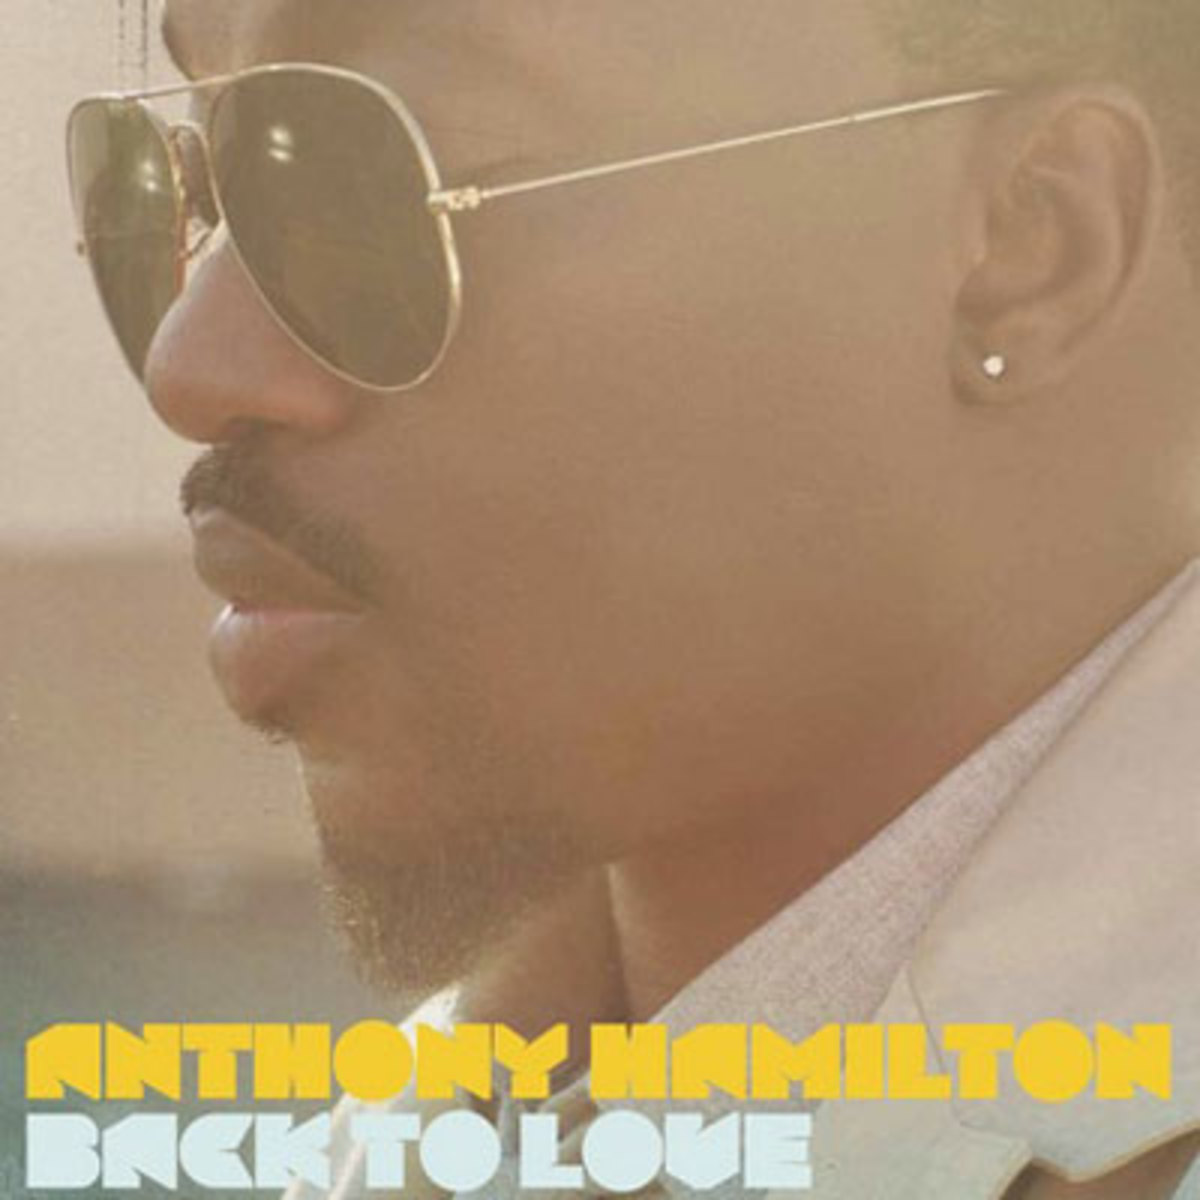 anthonyhamilton-backto.jpg